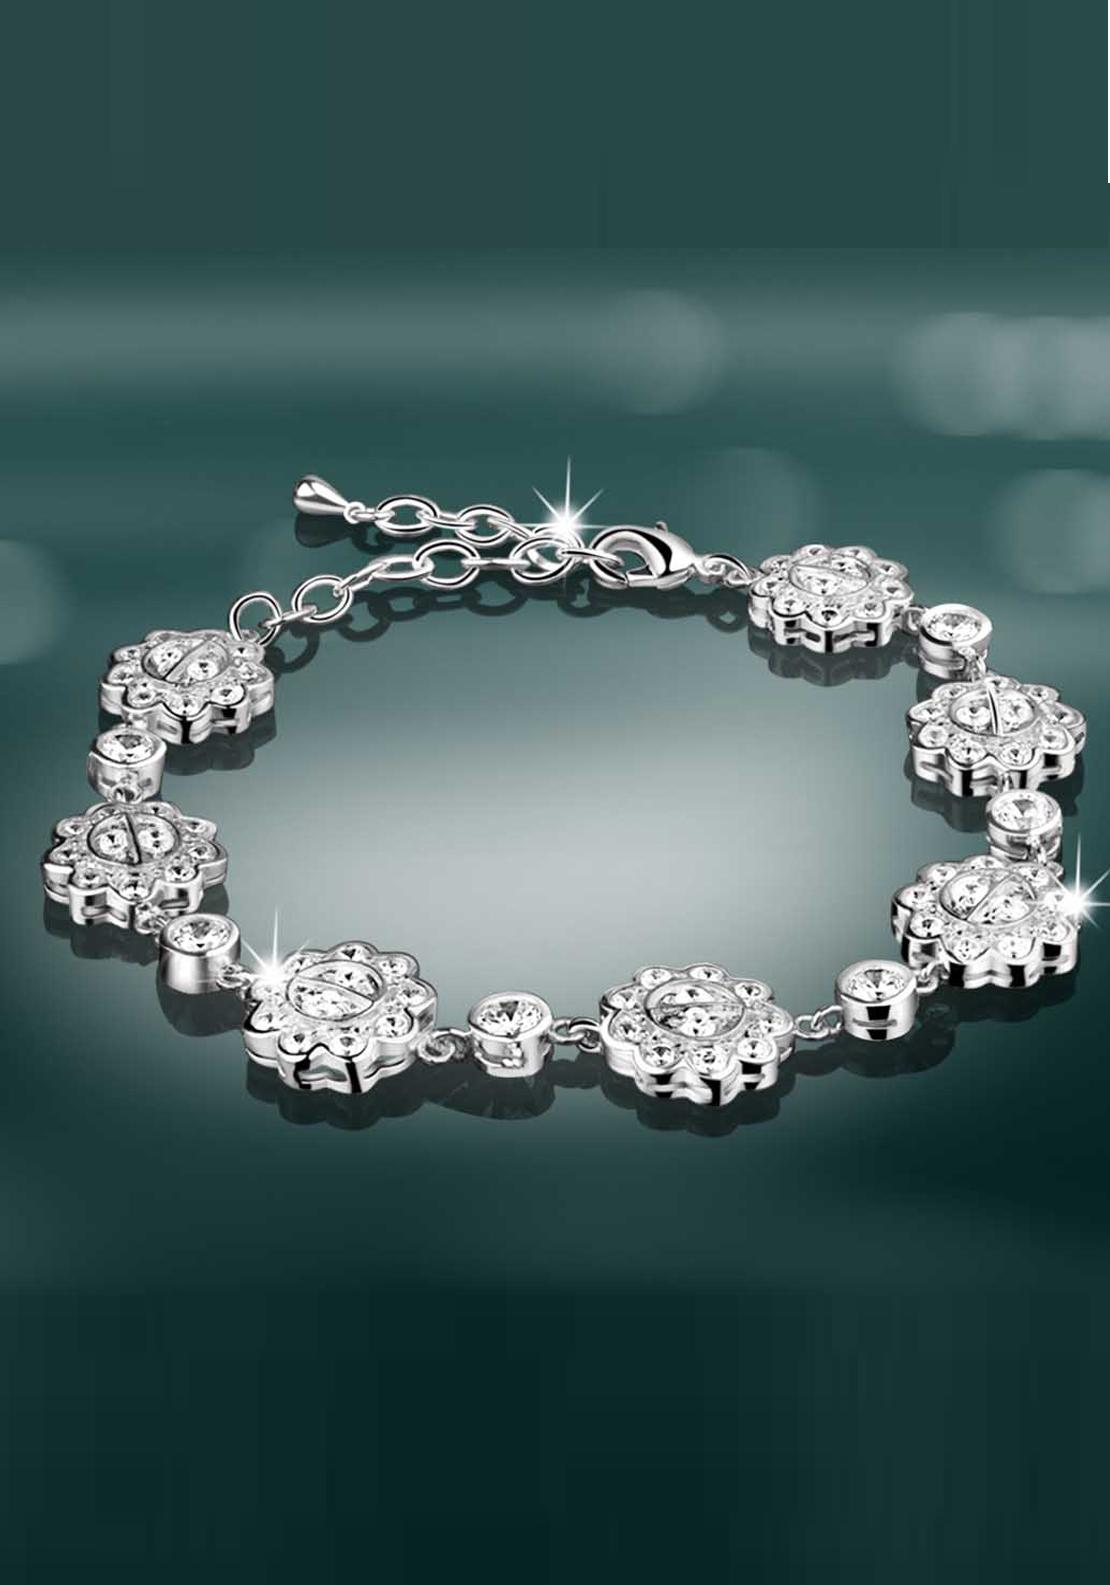 Newbridge Maureen O'Hara Crystal Bracelet, Silver / Clear